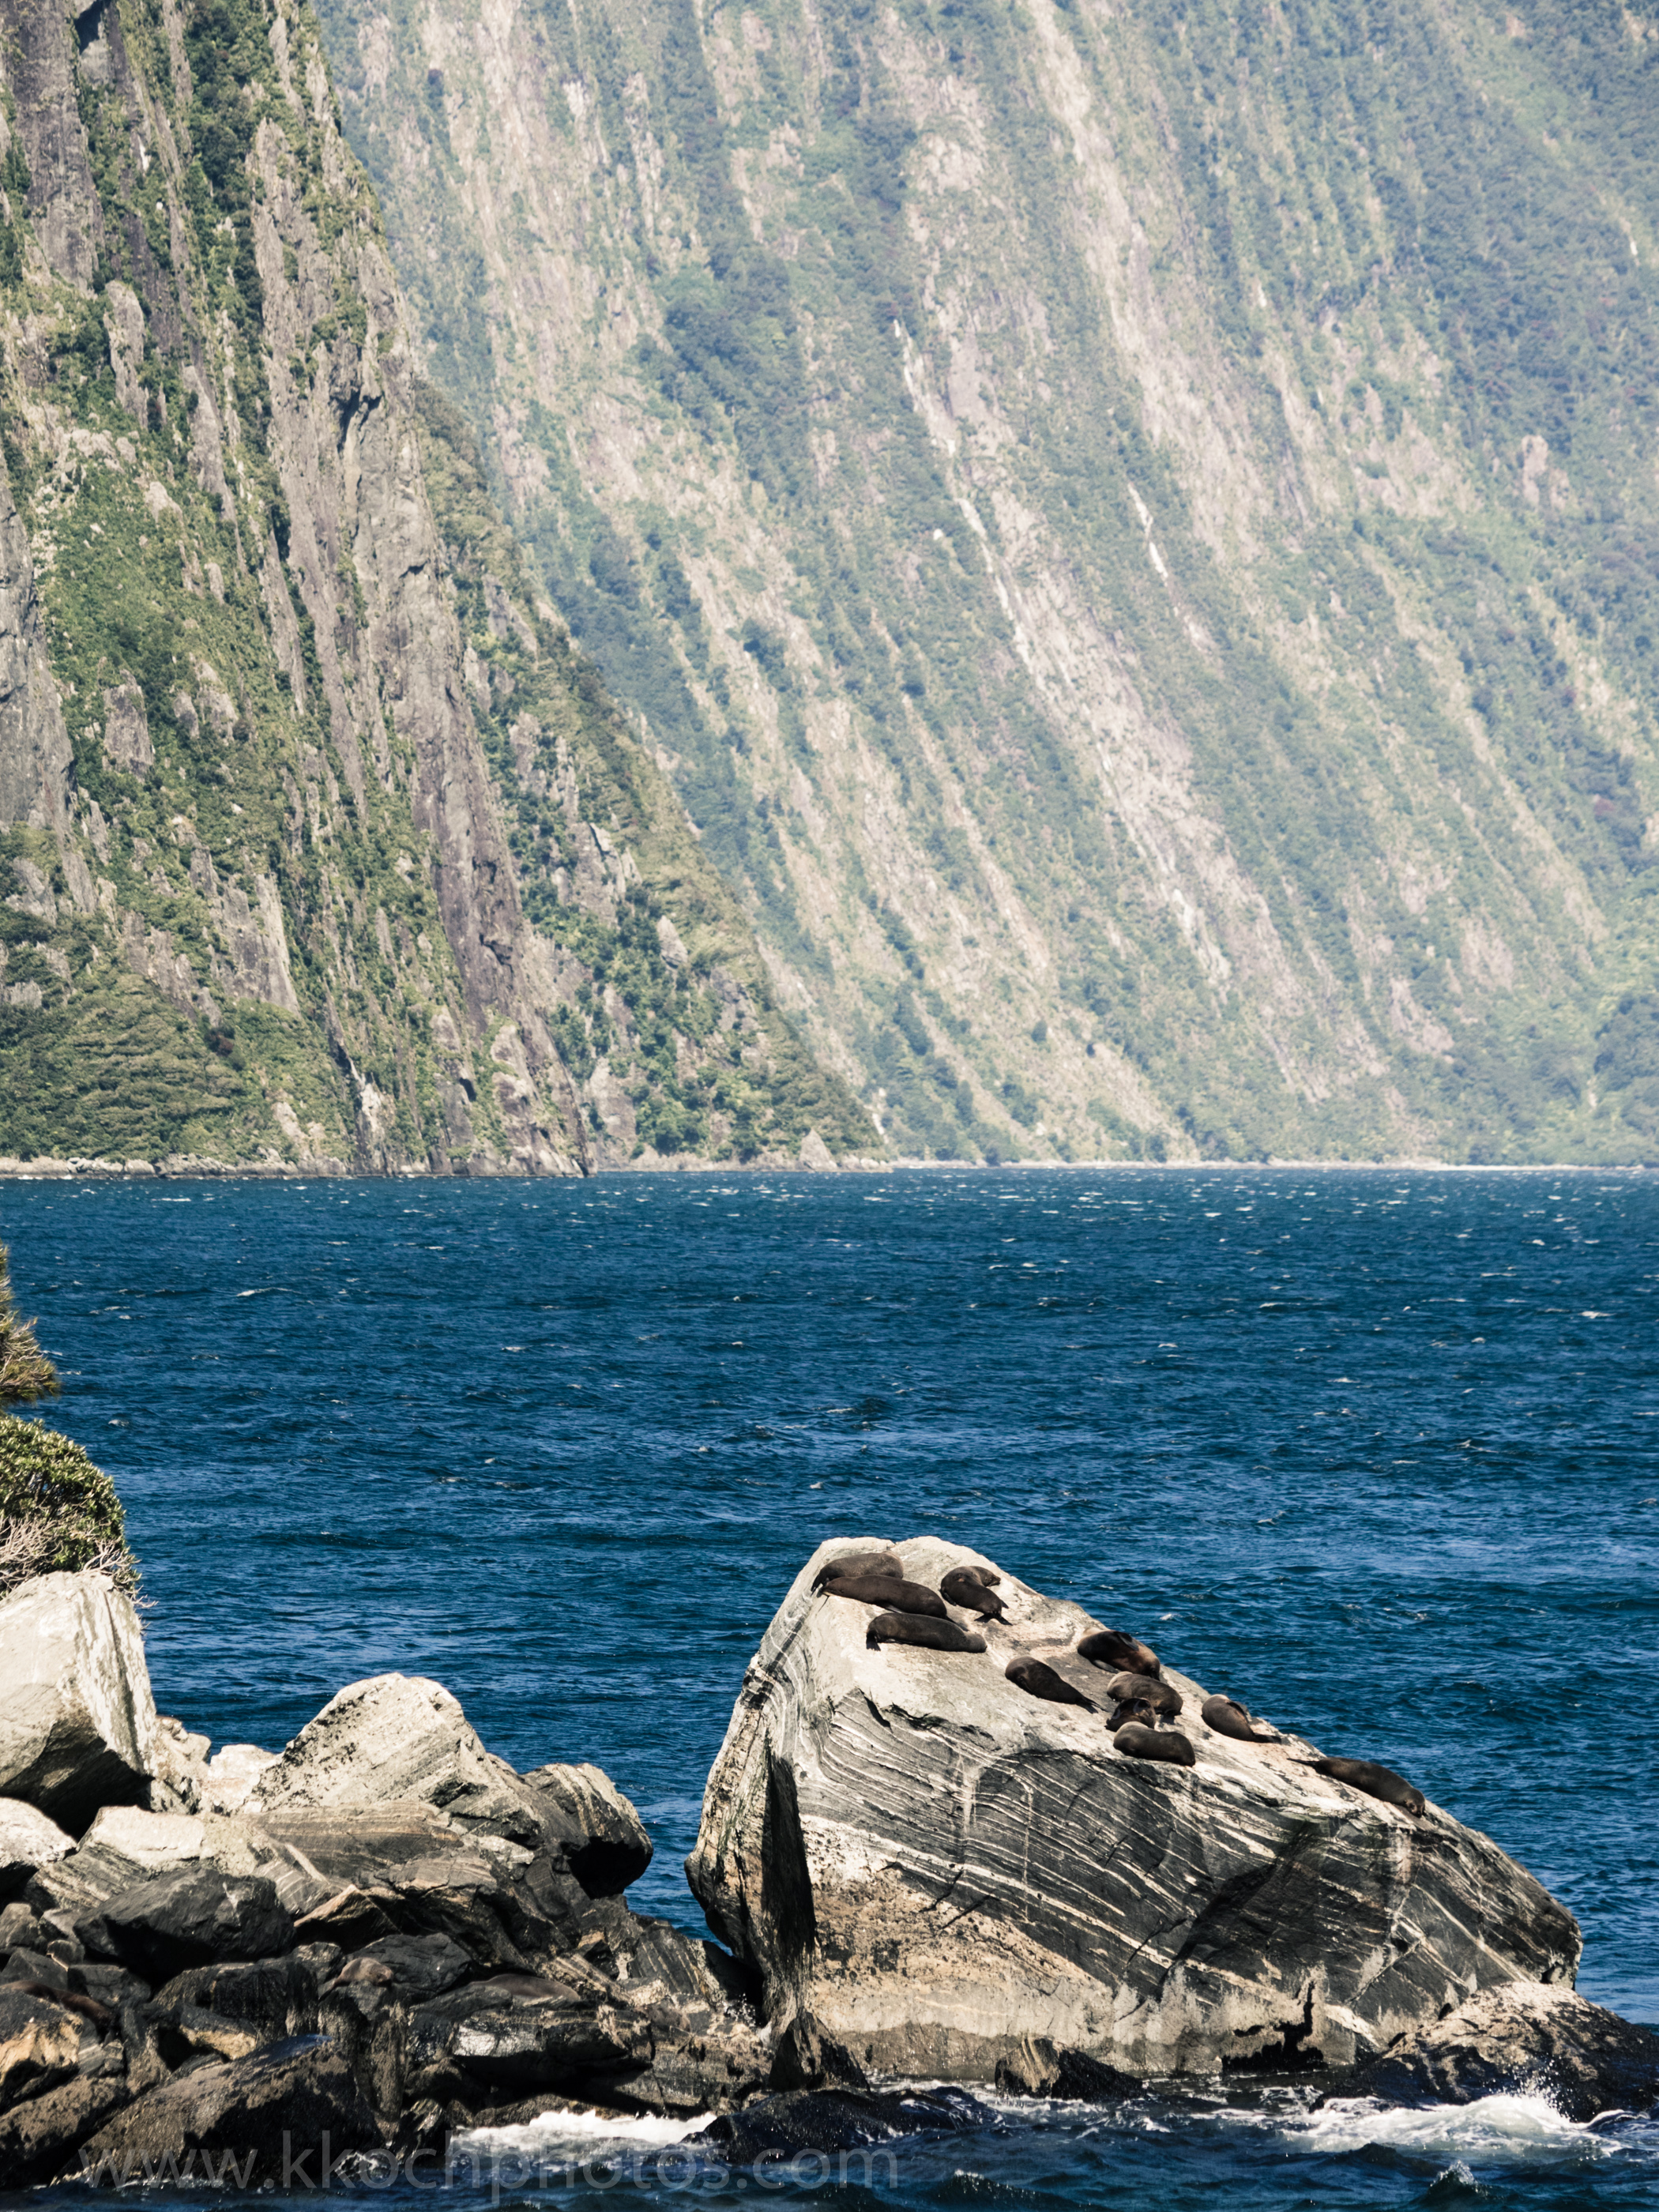 look at the fiord walls! They were cut by glaciers many years ago